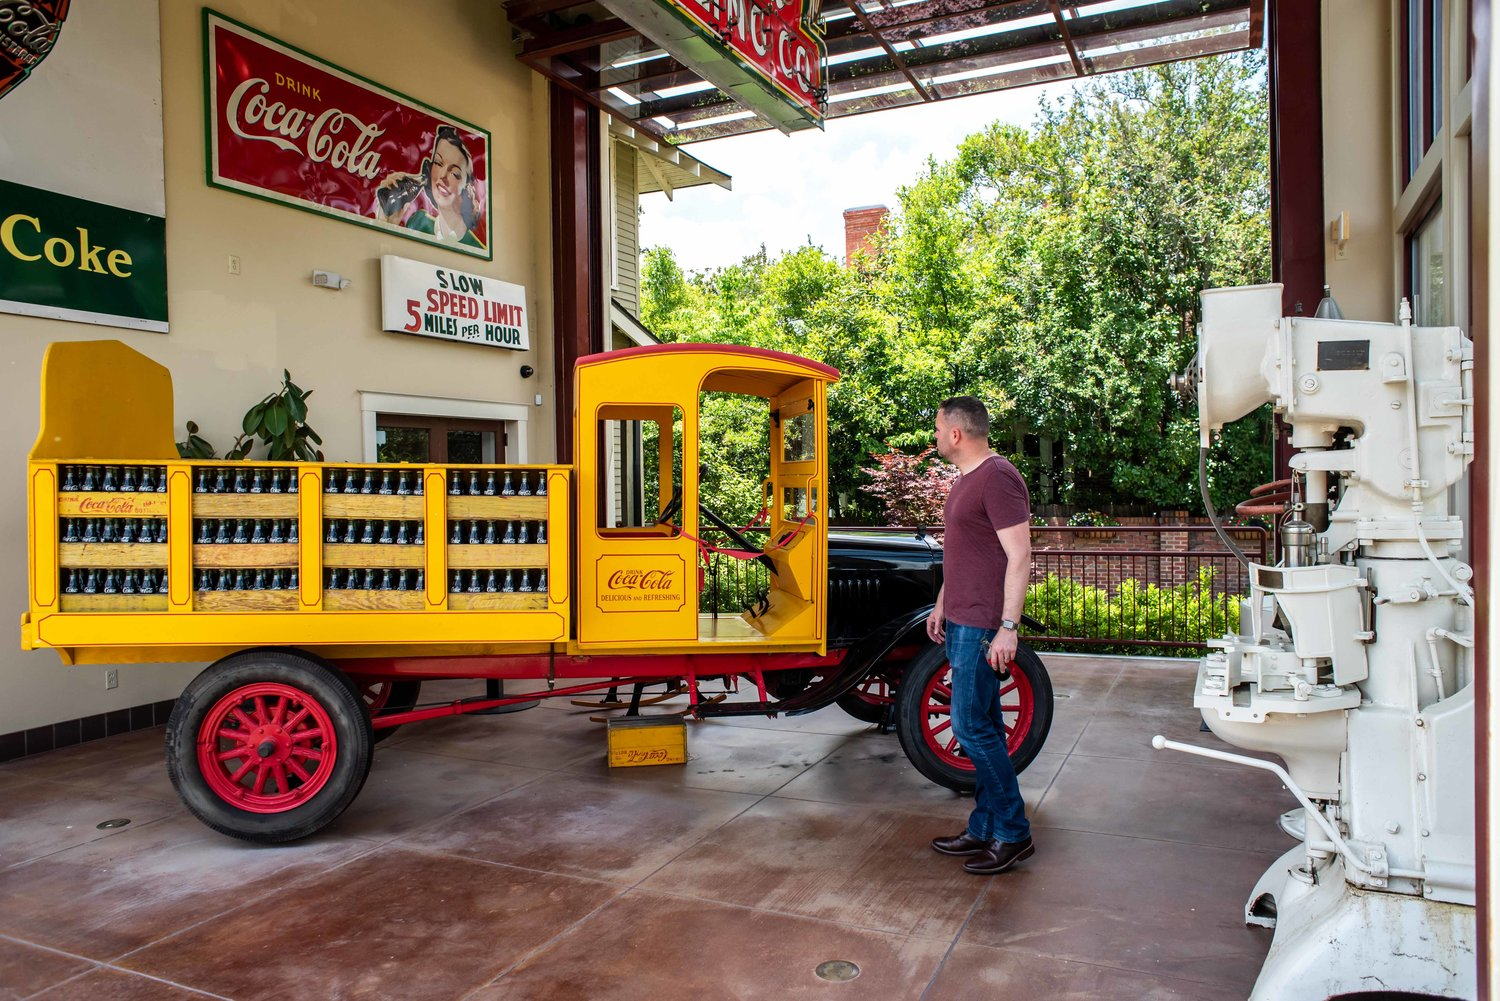 Coke delivery truck.